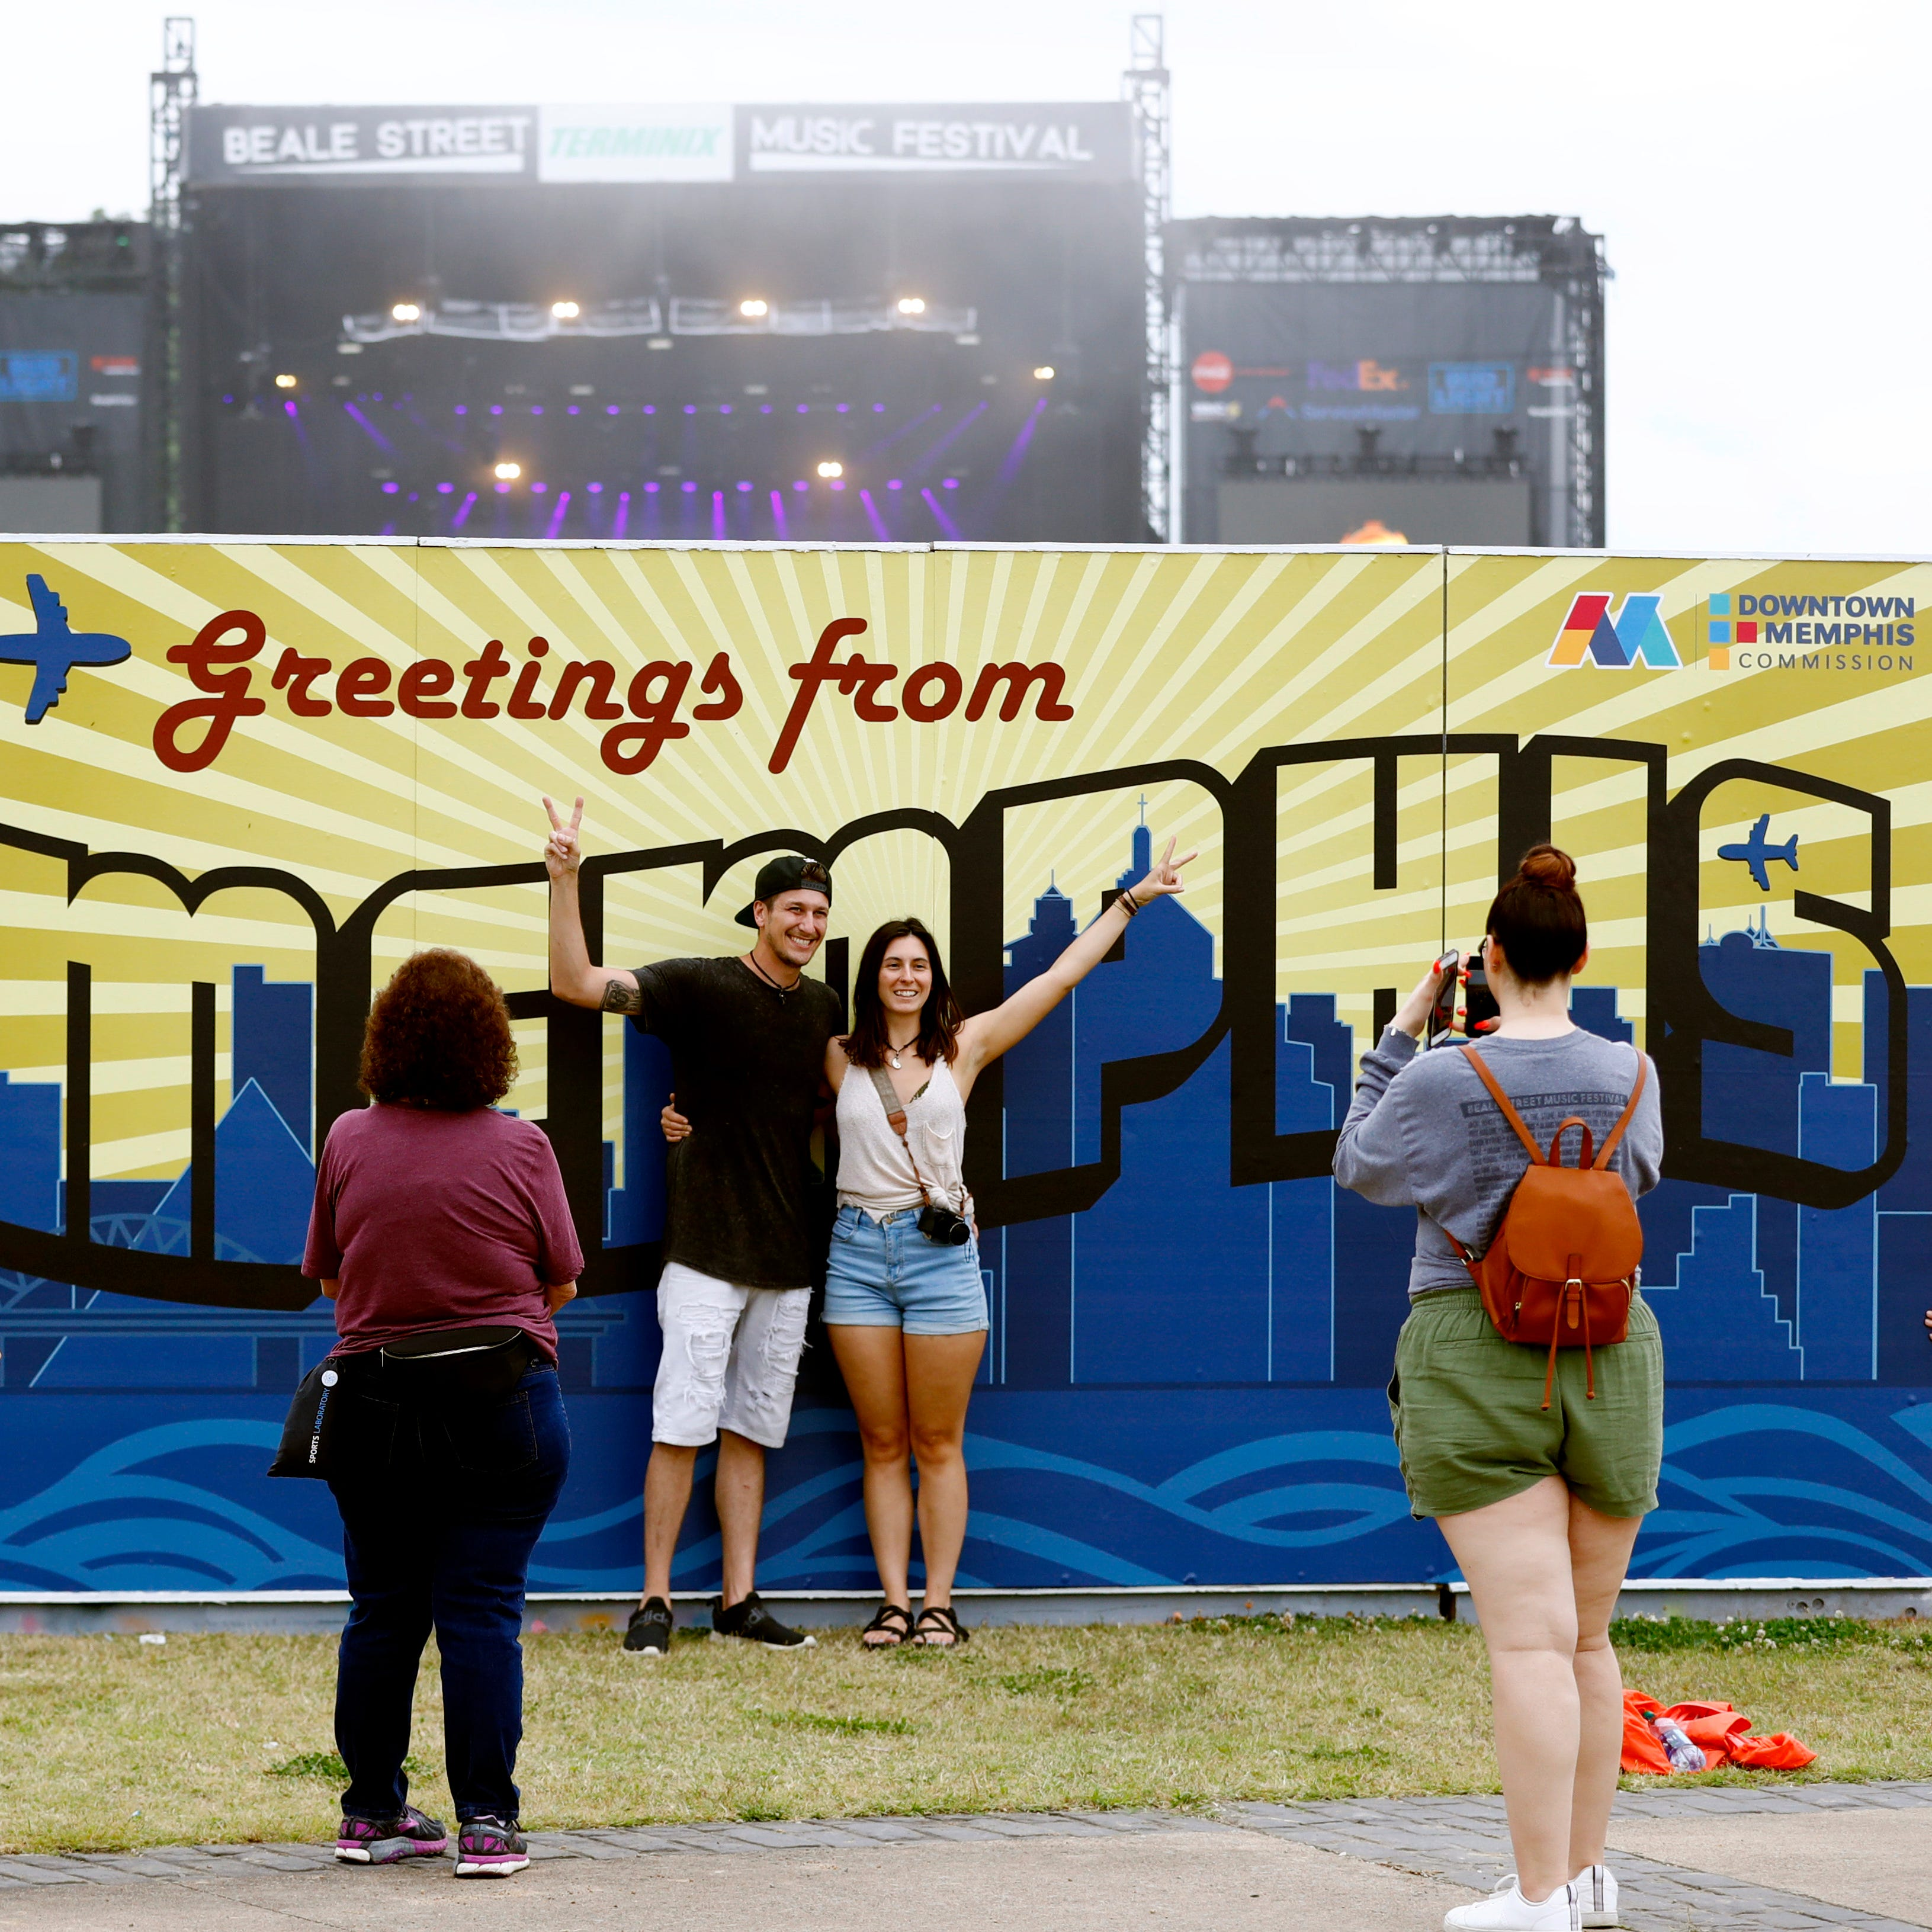 Beale Street Music Festival live blog: Friday at Memphis in May